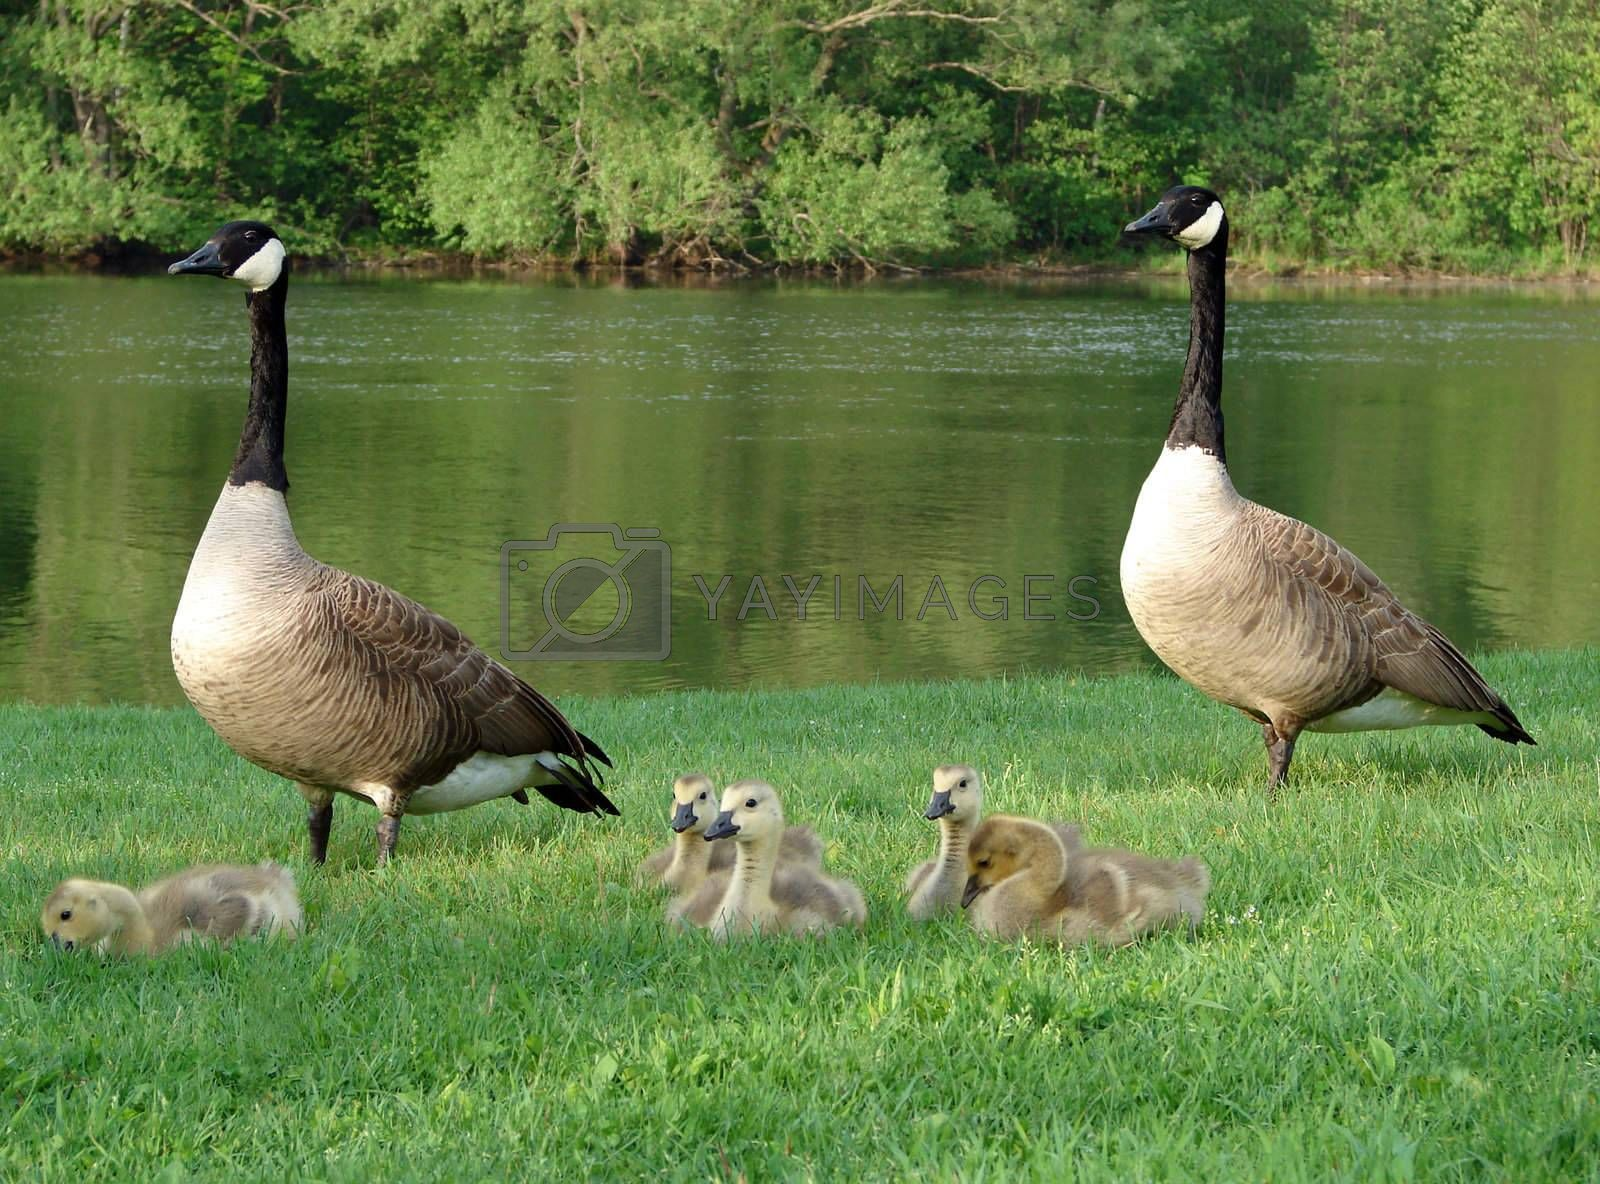 Geese and their babies by Thorvis